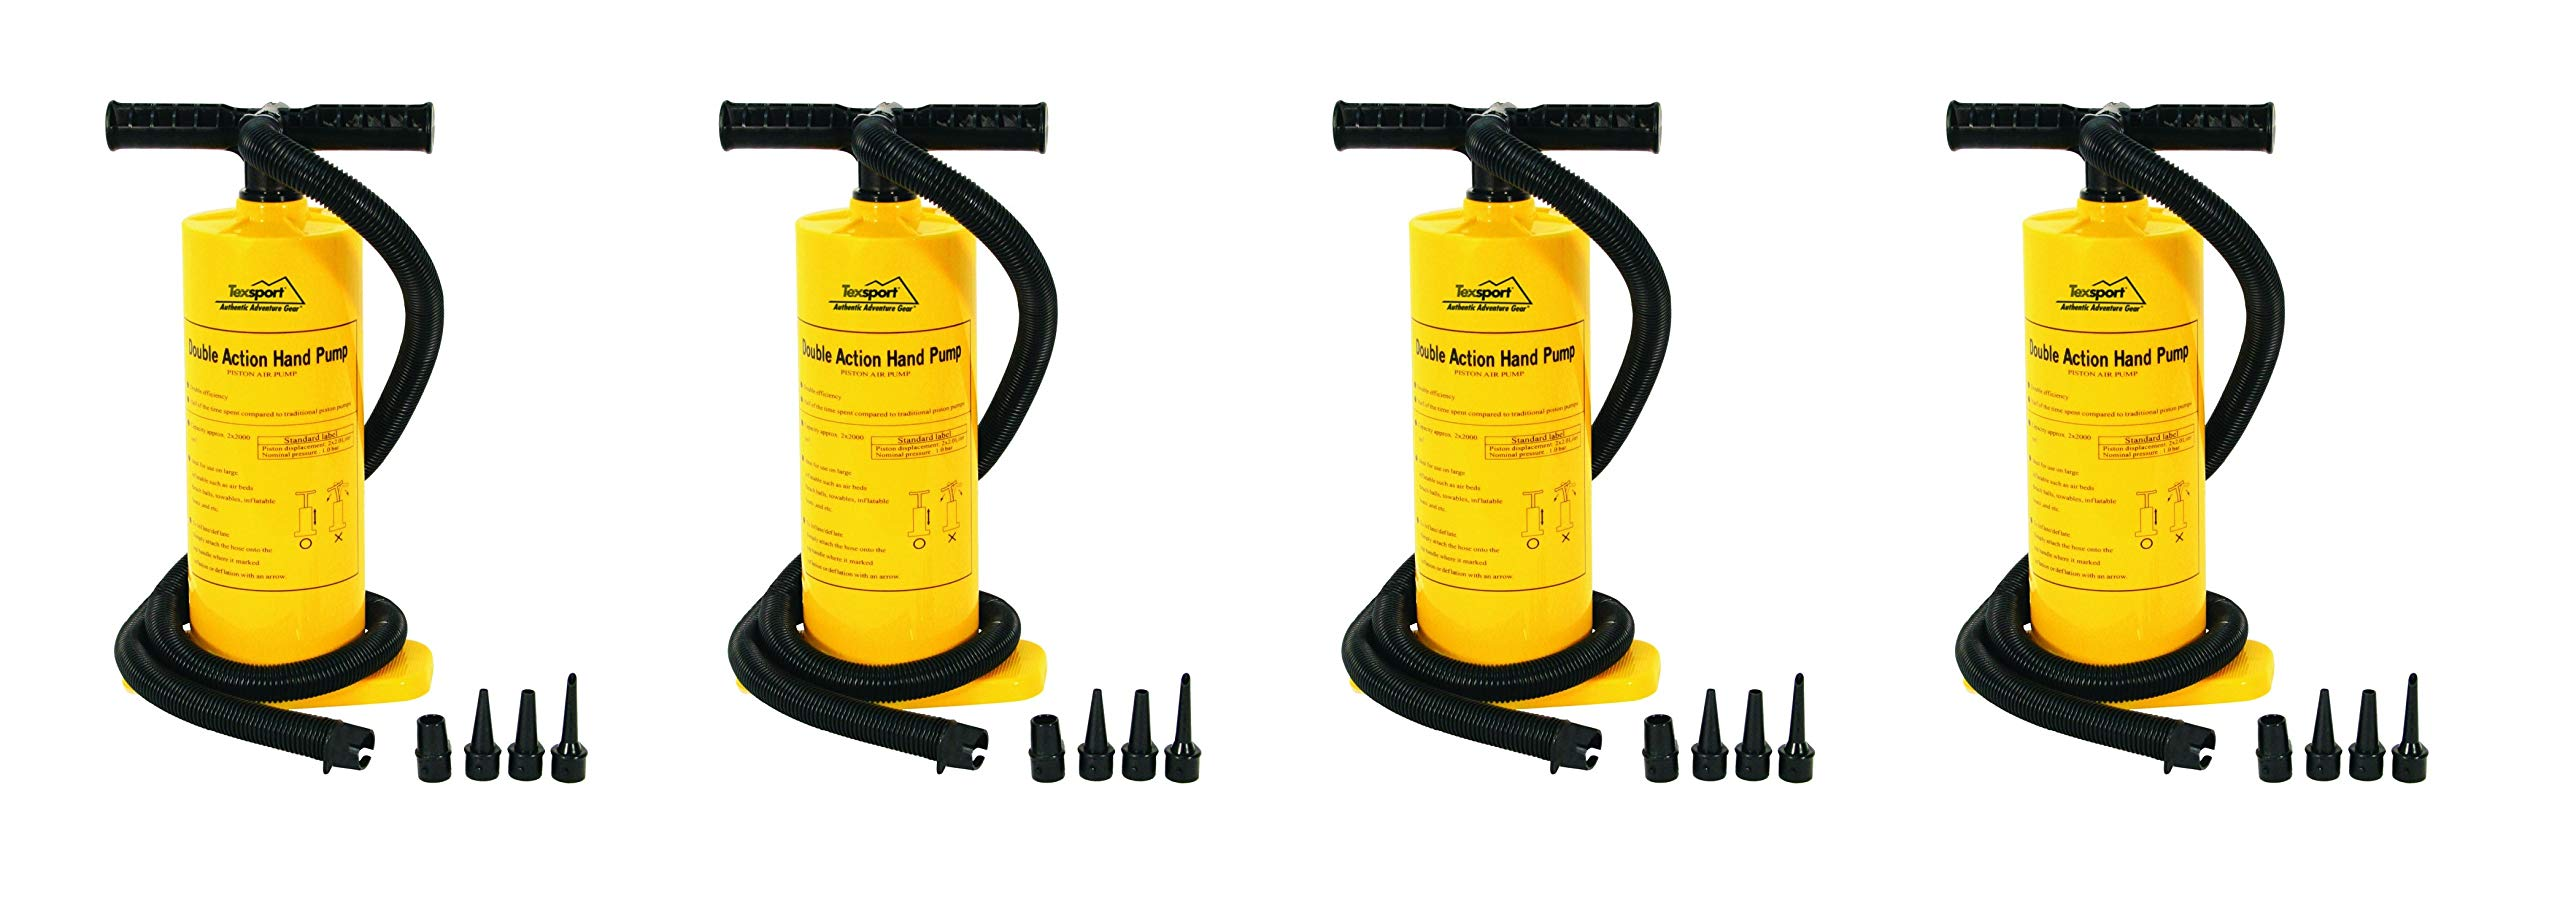 Texsport Double Action Hand Pump for Air Mattress by Texsport